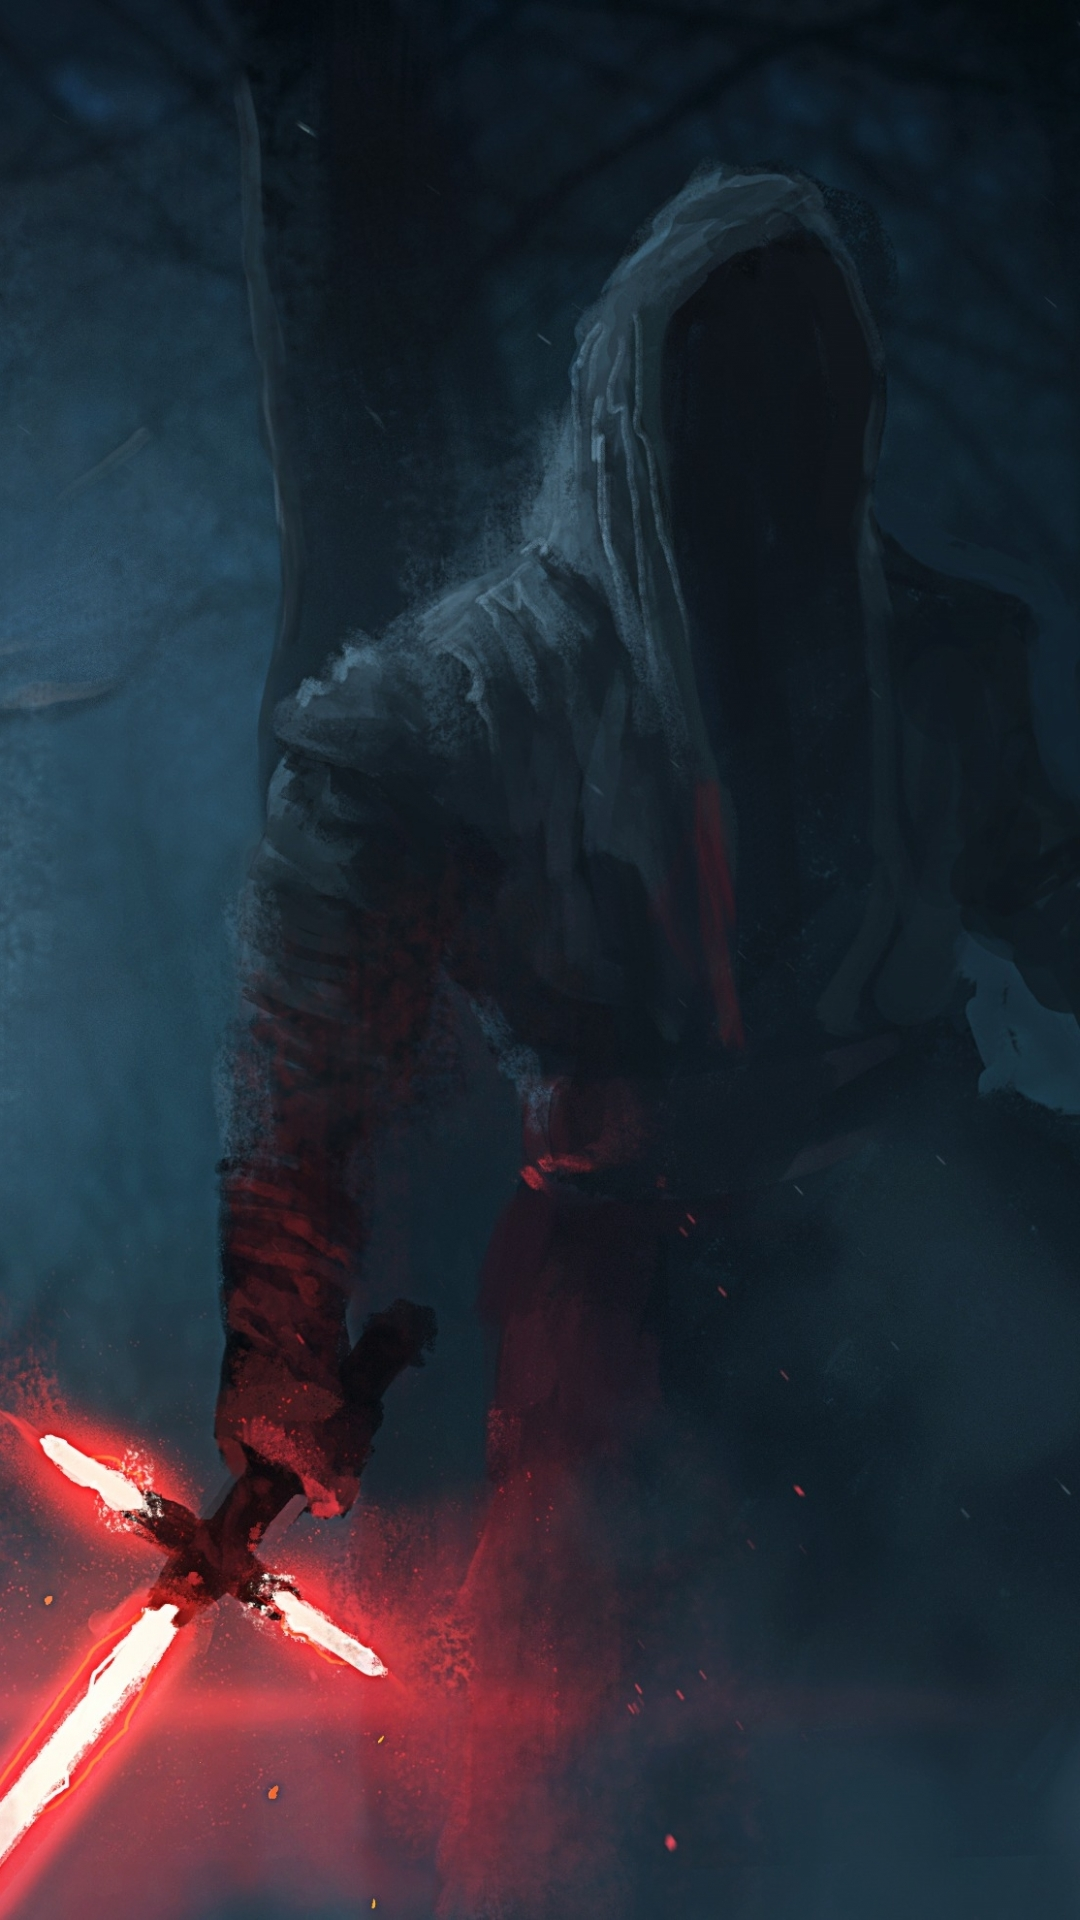 39 Kylo Ren AppleiPhone 7 Plus 1080x1920 Wallpapers   Mobile Abyss 1080x1920